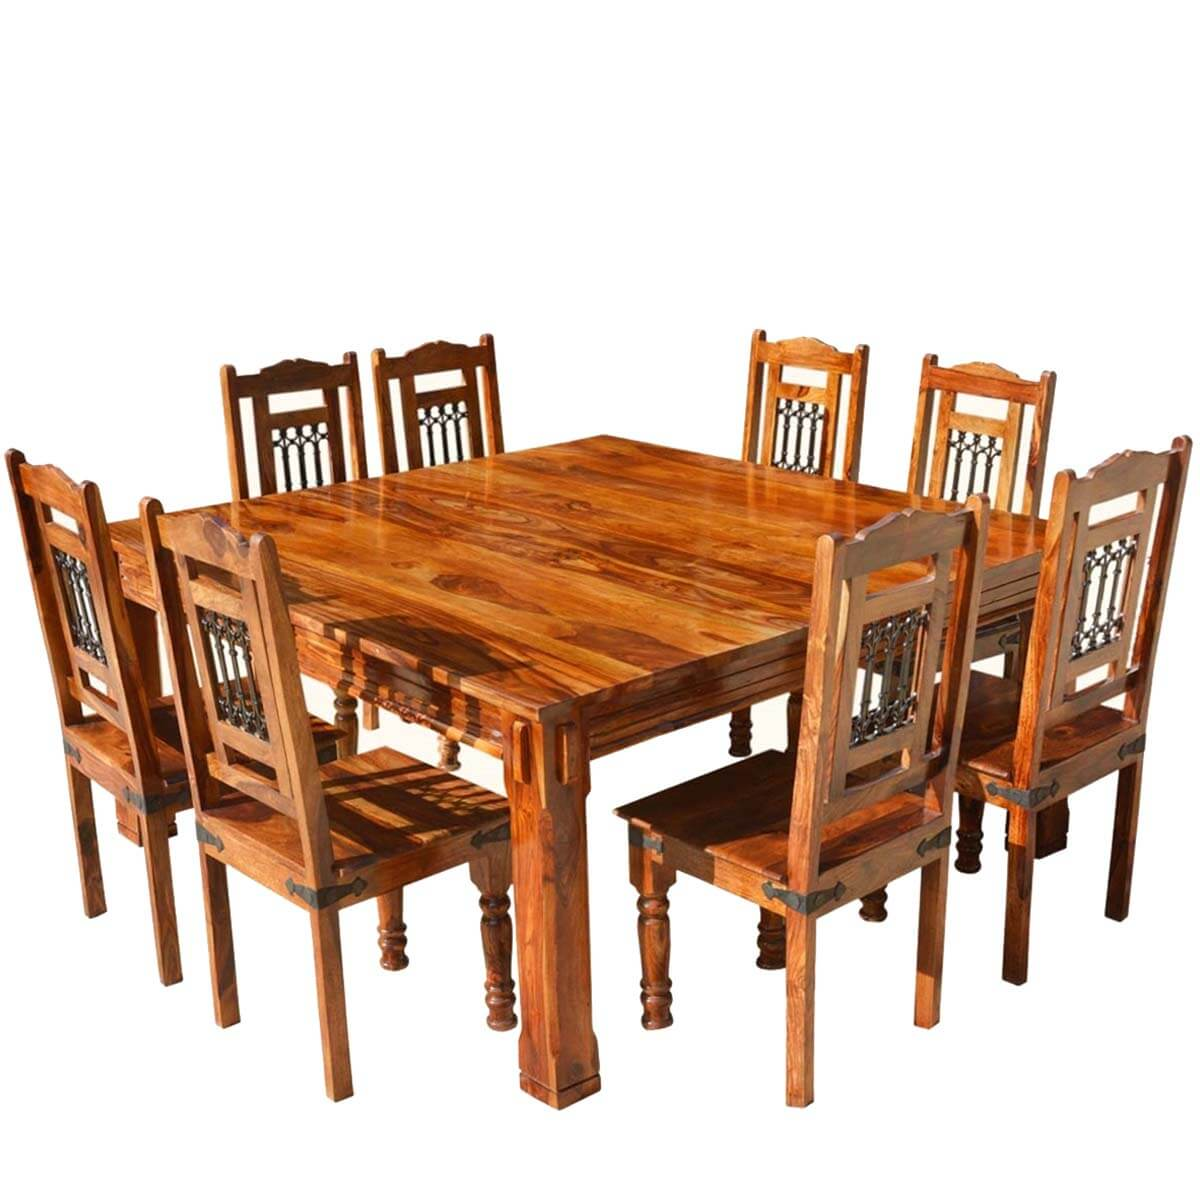 Transitional solid wood rustic square dining table chairs set for Solid wood dining set